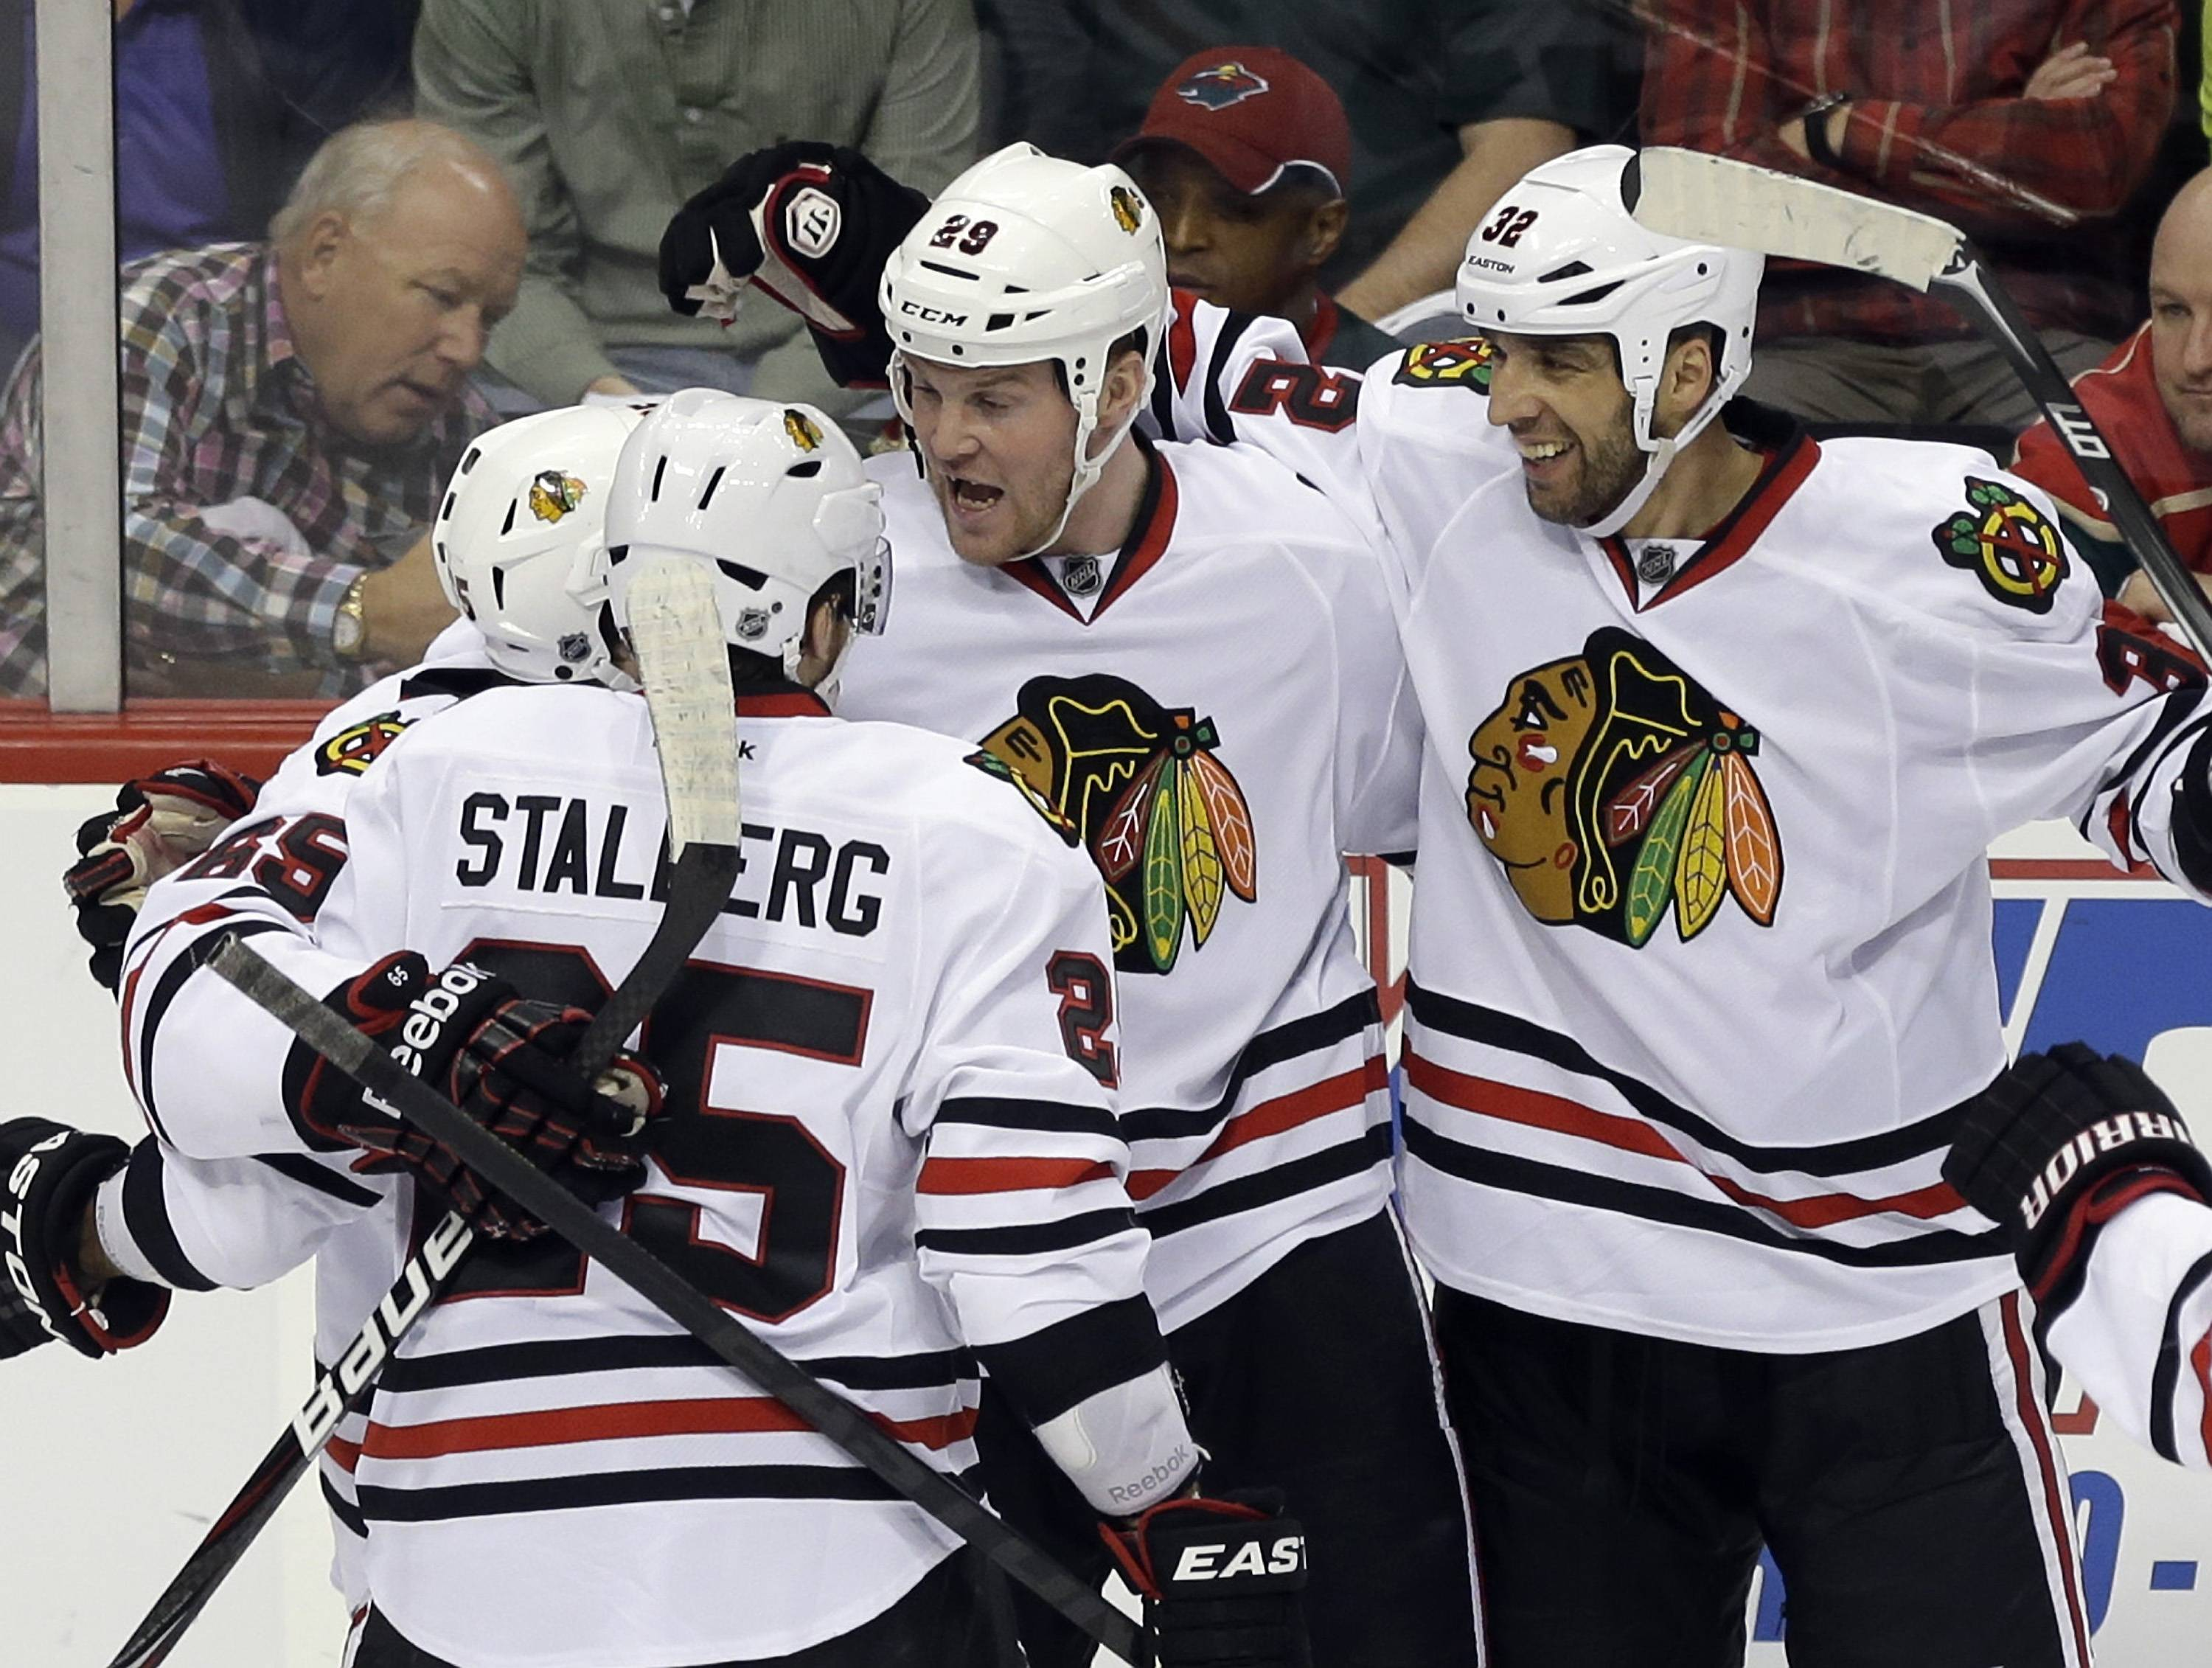 Chicago Blackhawks' Bryan Bickell, second from right, celebrates with teammates after he scored against Minnesota Wild backup goalie Darcy Kuemper in the third period of Game 4 of an NHL hockey Stanley Cup playoff series, Tuesday, May 7, 2013 in St. Paul, Minn. The Blackhawks won 3-0.